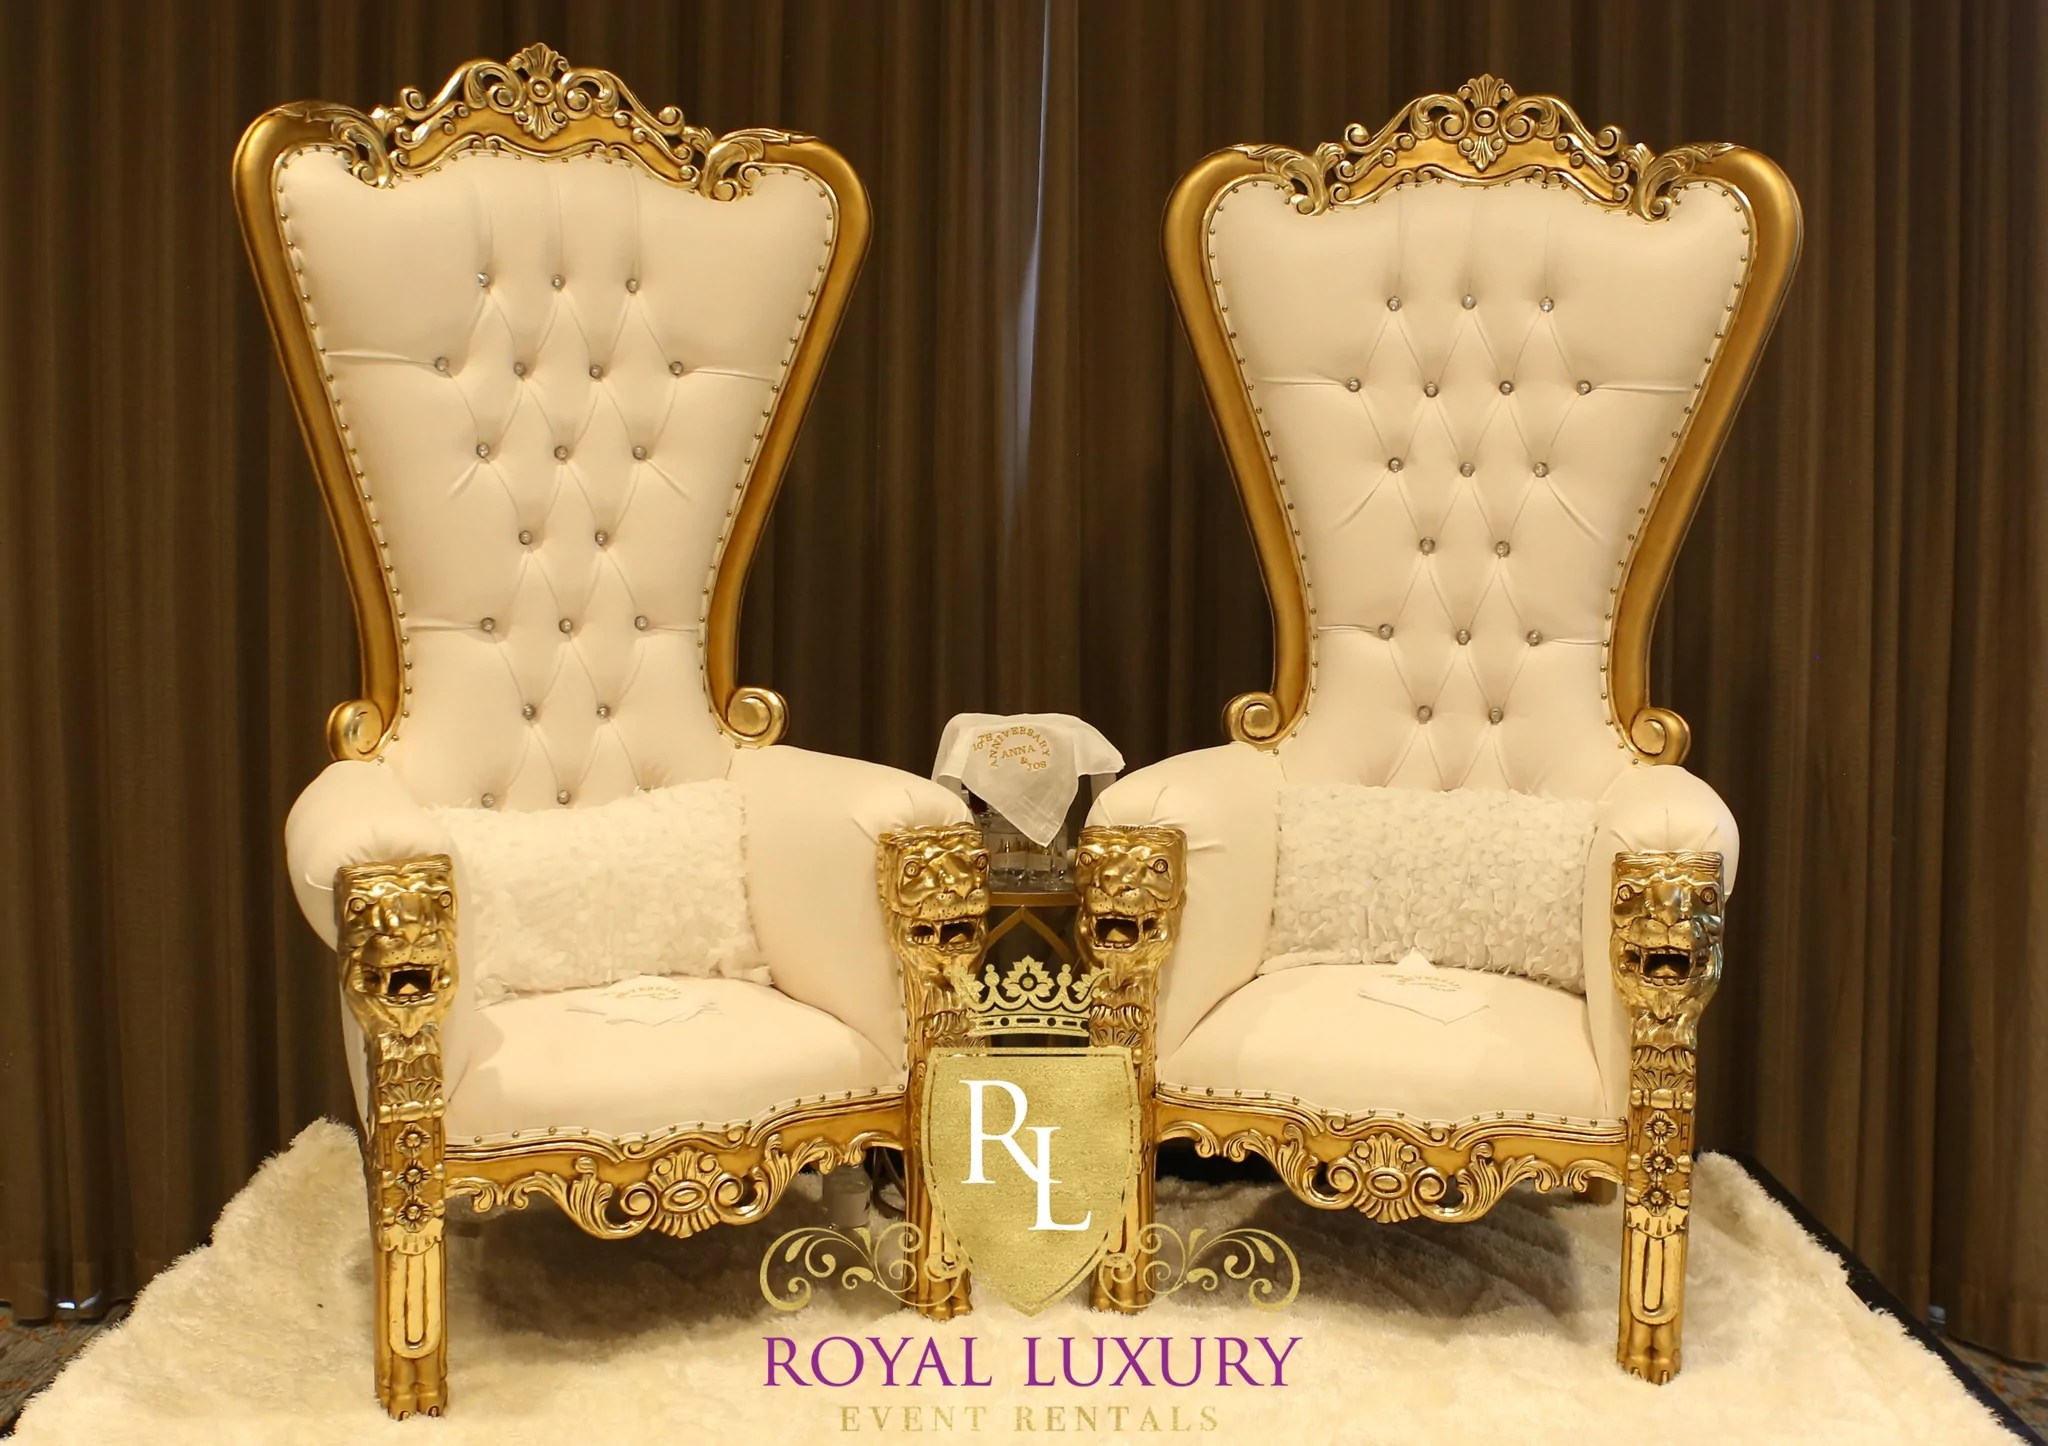 Royal Lion Gold Throne Chair with Ivory Leather  Royal